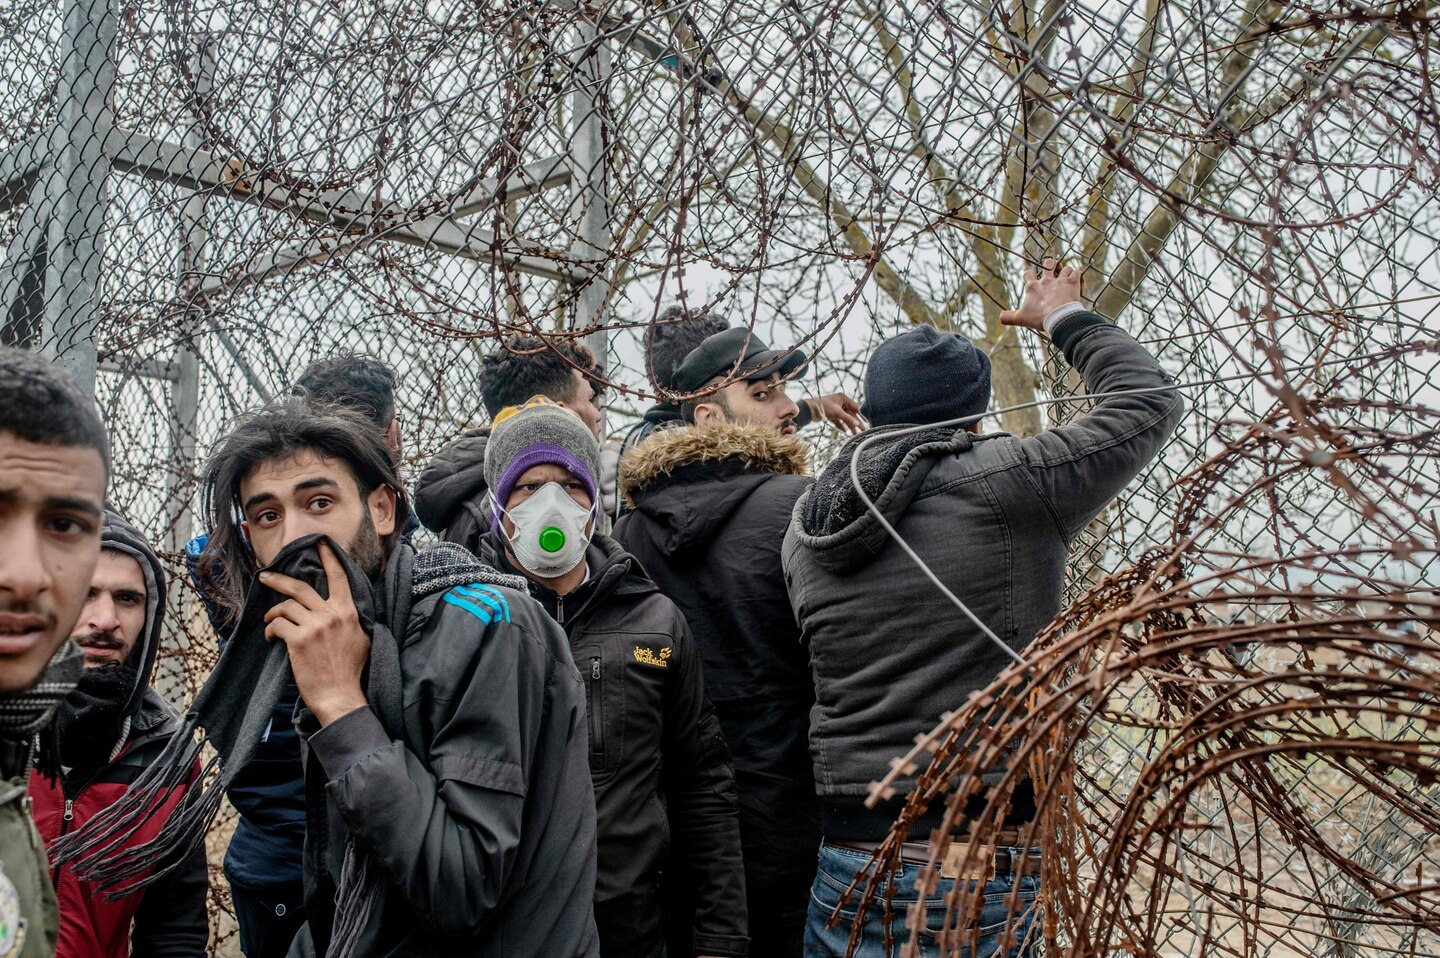 Migrants try to get through border fencing between Turkey and Greece.